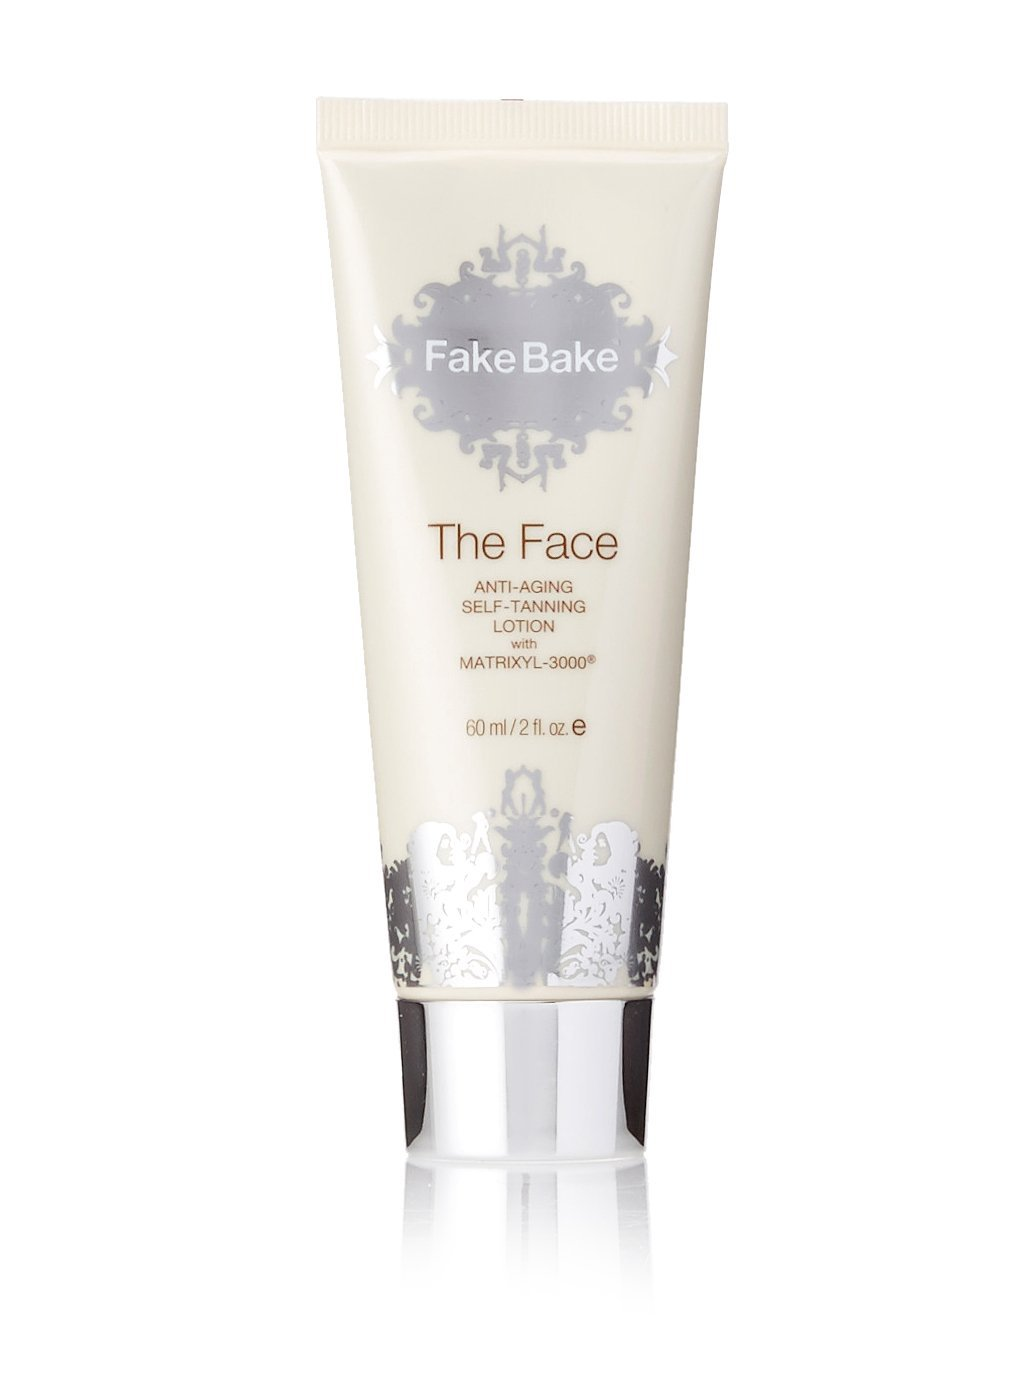 Fake Bake Face Self-Tanning Lotion, 2-Ounces